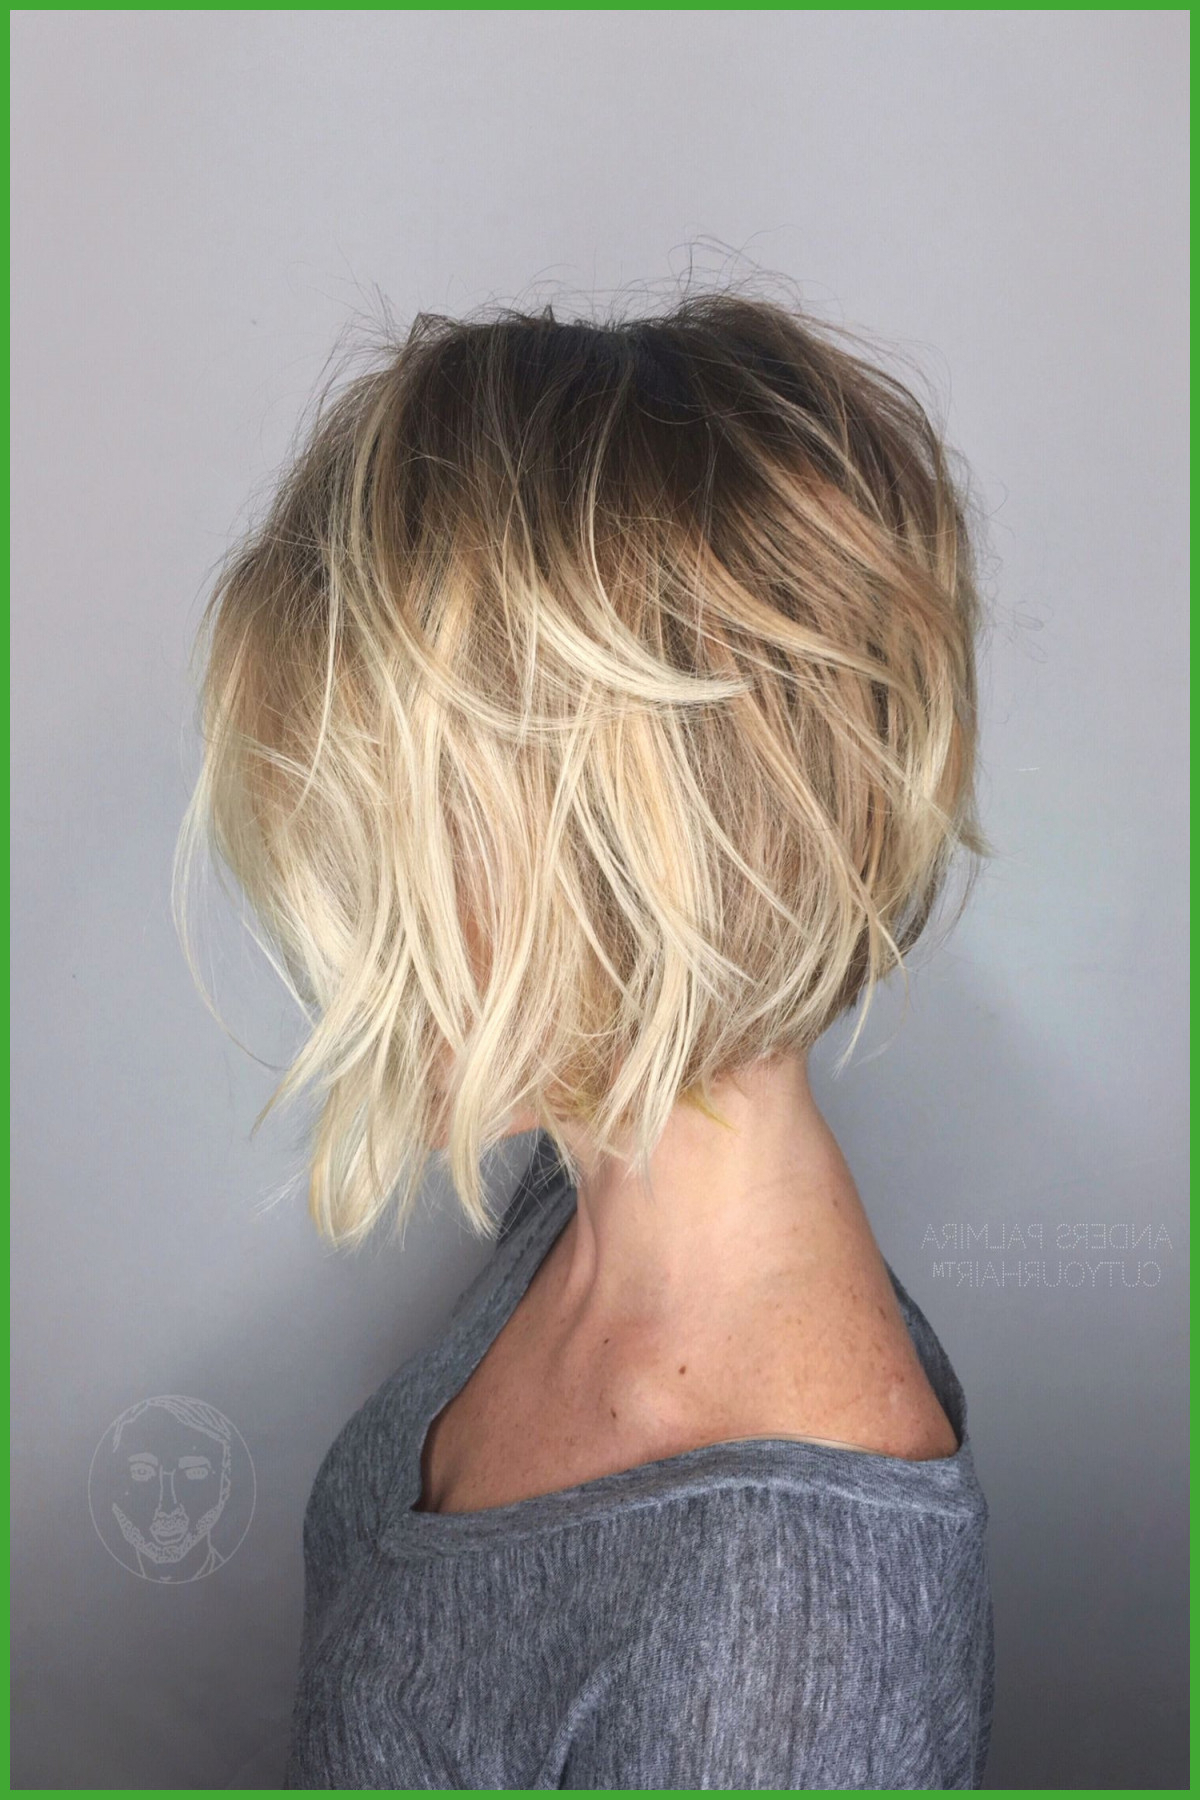 Short Curly Layered Bob Hairstyles Luxury Best 20 Short Shag In Well Known Curly Layered Bob Hairstyles (View 17 of 20)